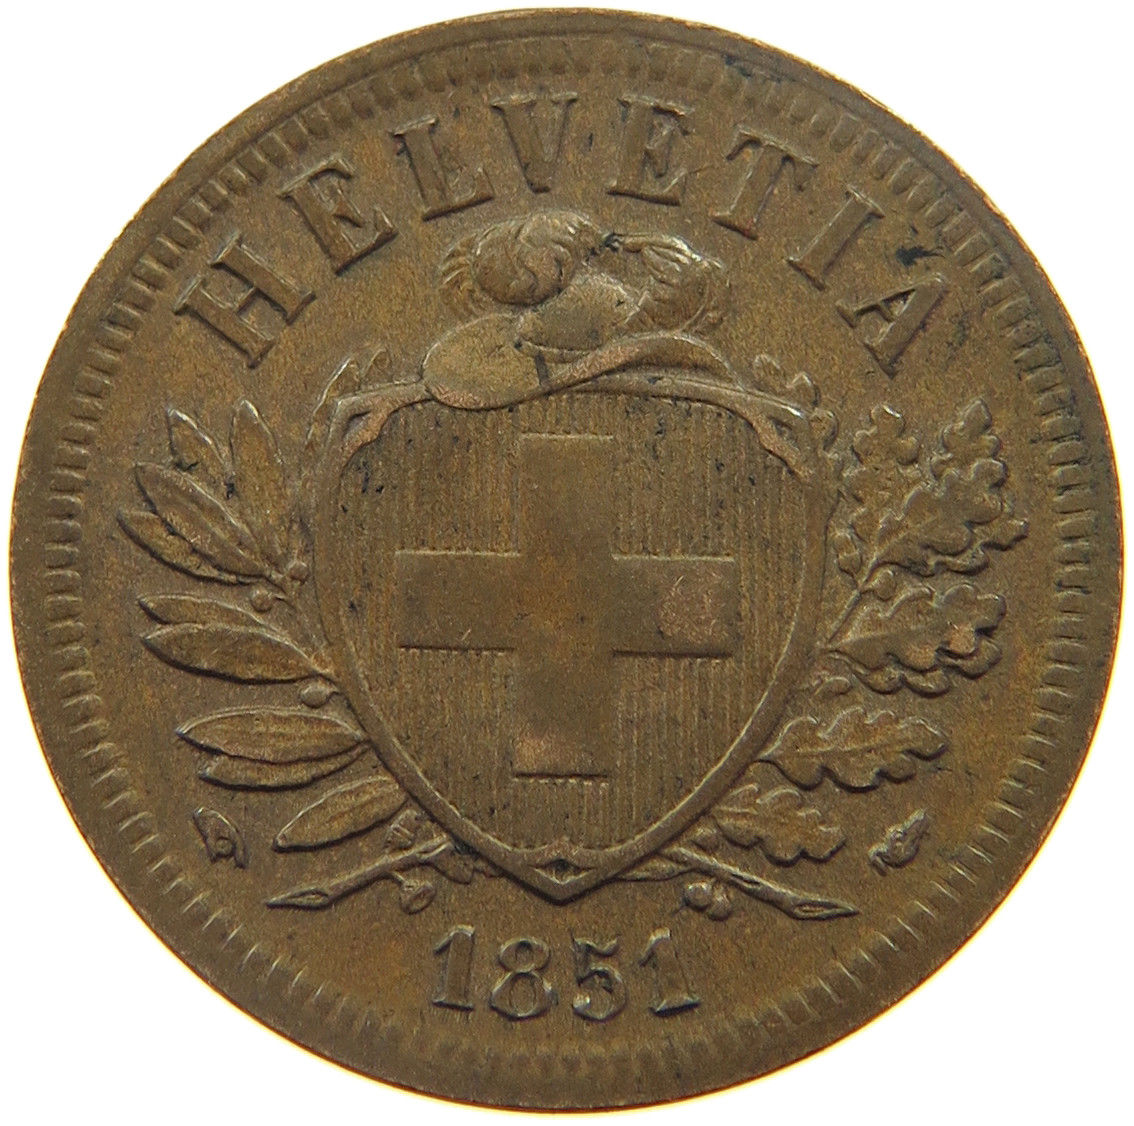 Two Centimes (Rappen) 1851: Photo Switzerland 2 Rappen 1851